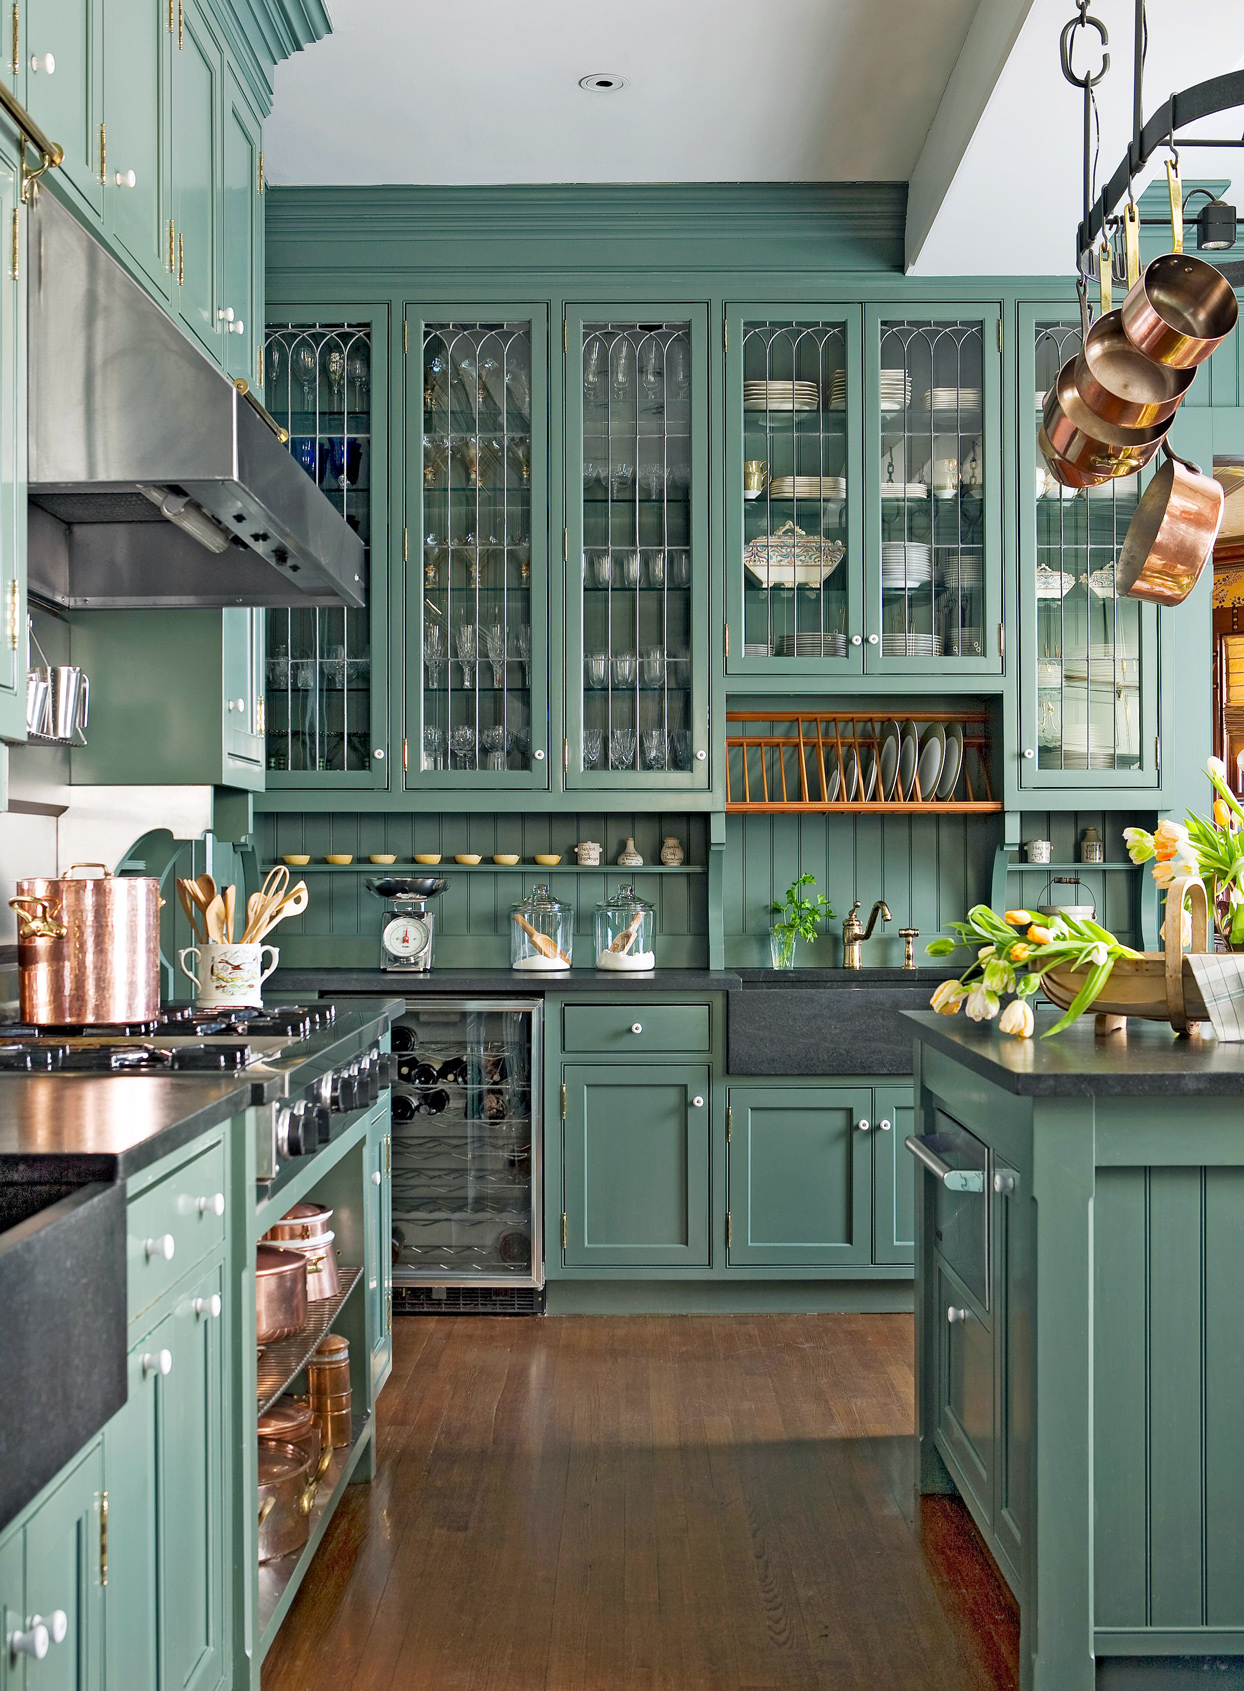 Victorian-Style Cabinets